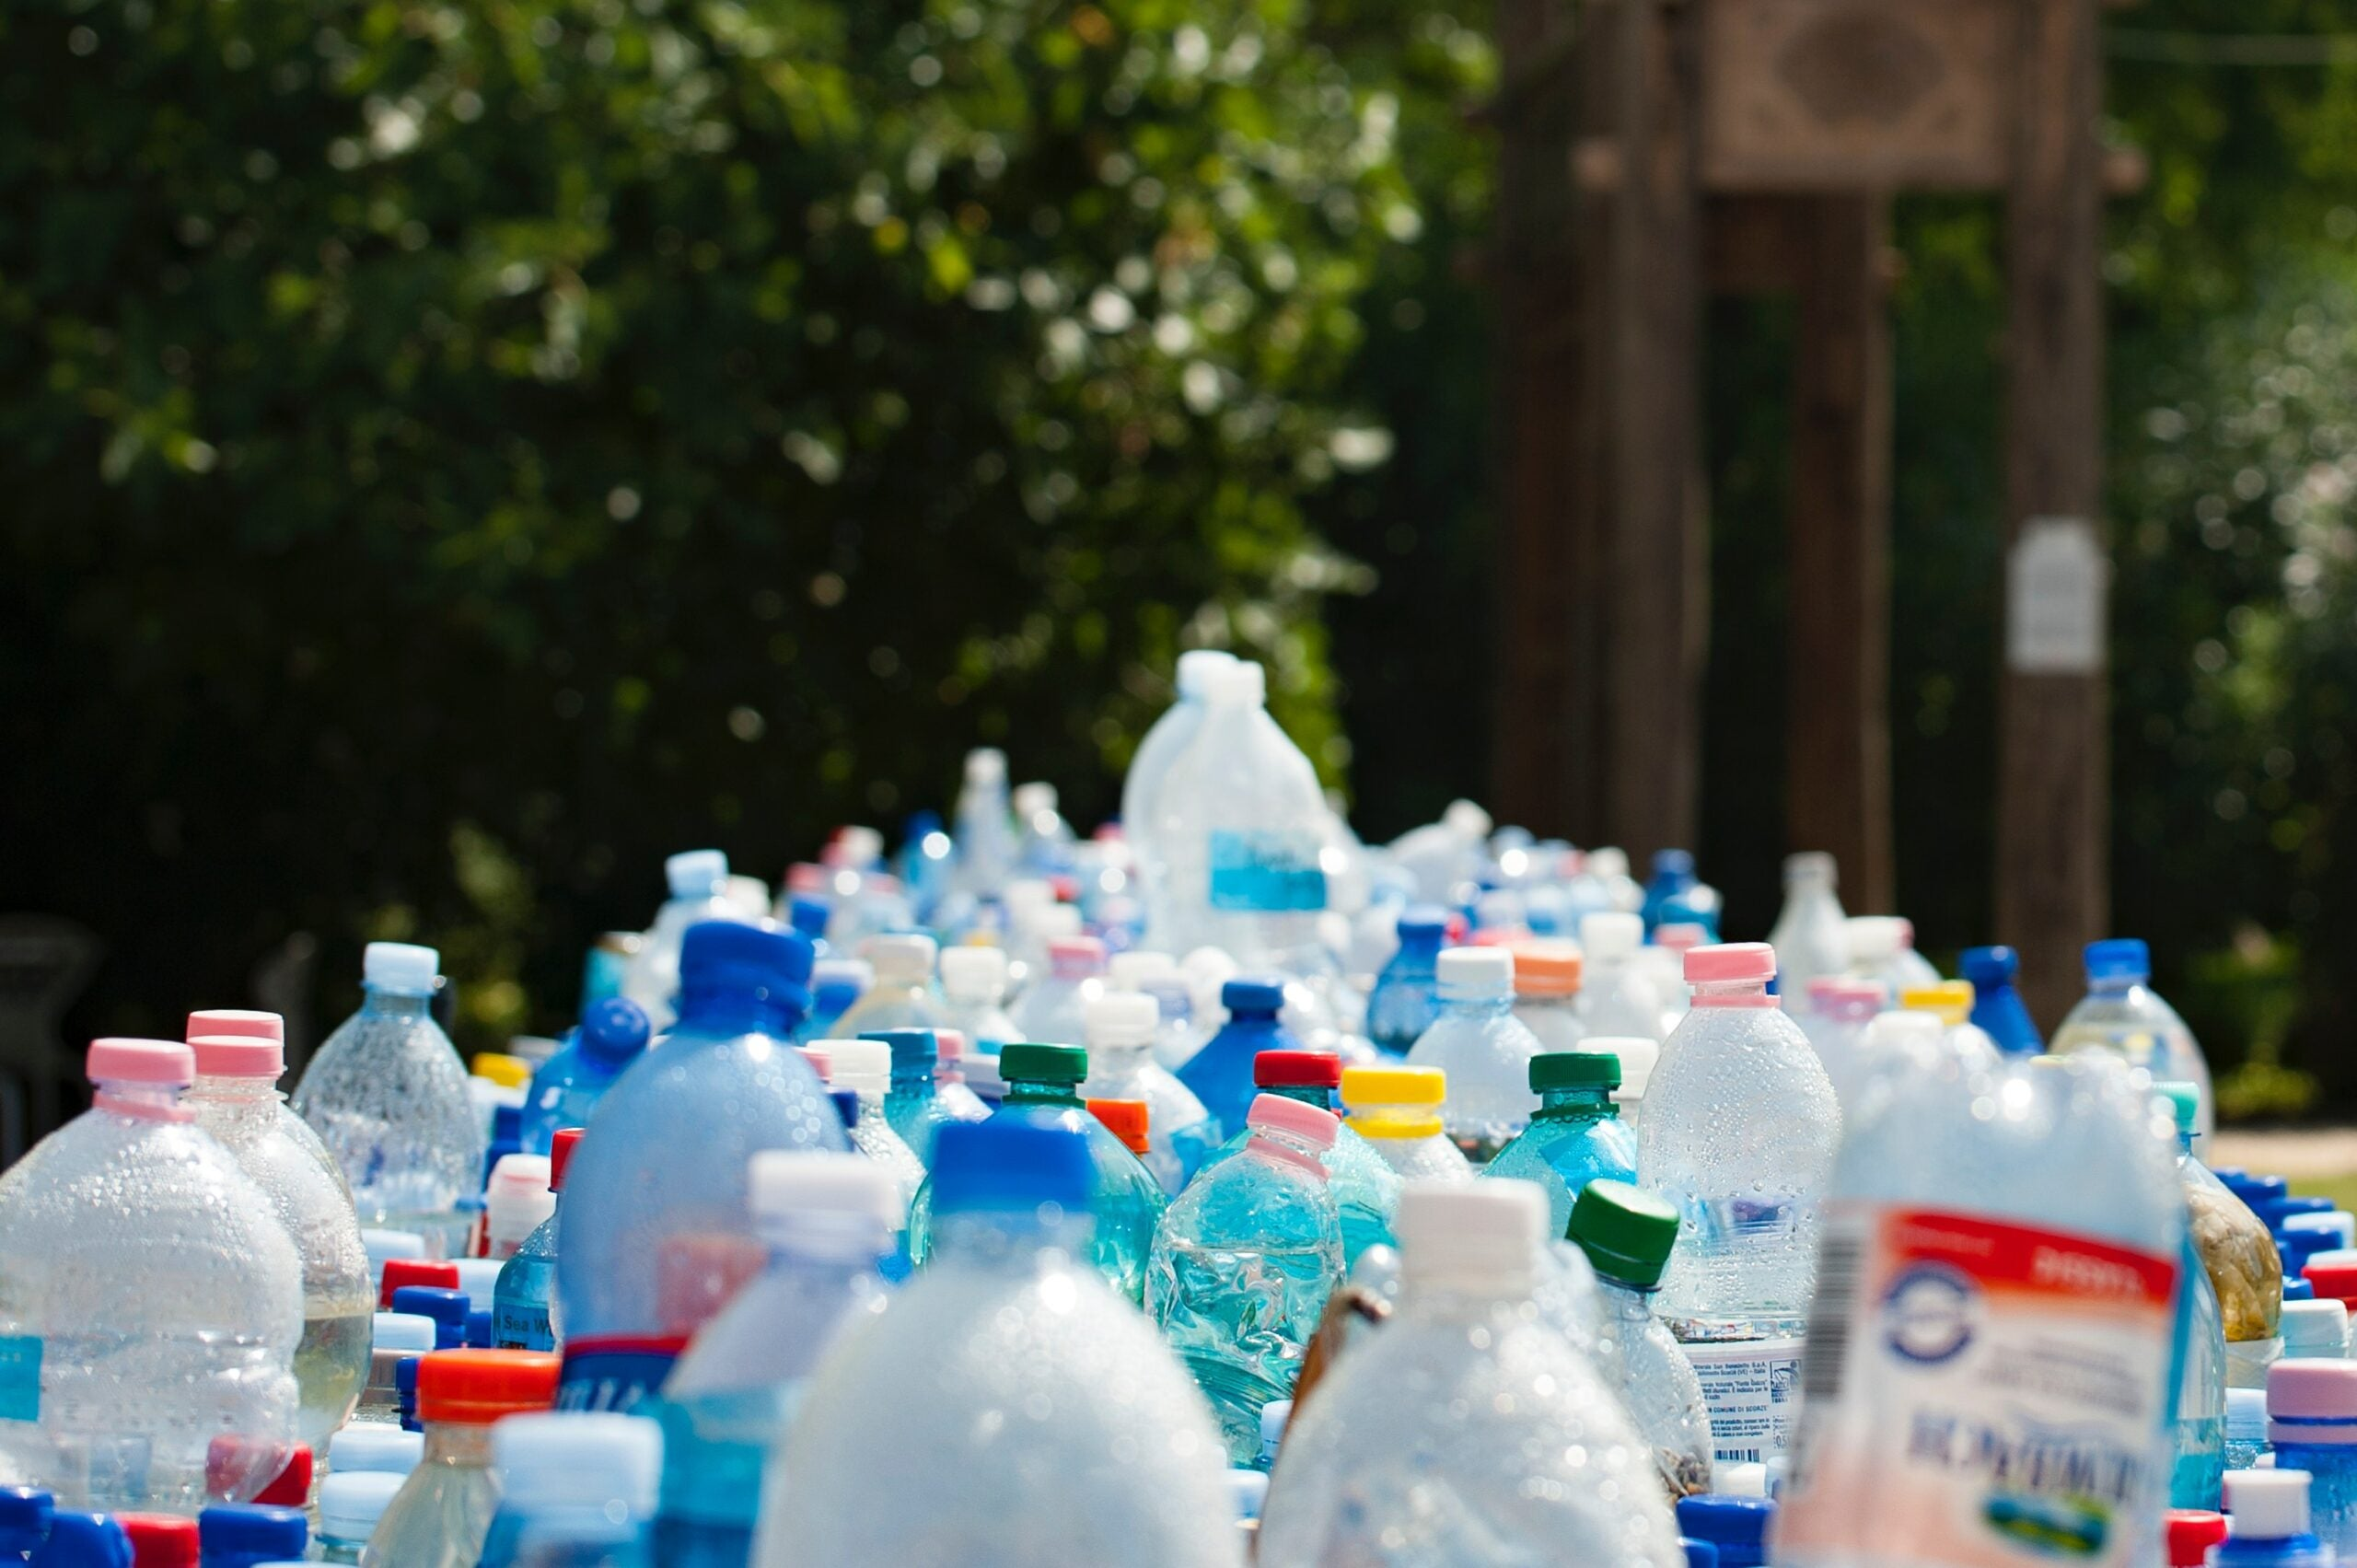 Plastics are hurting the planet in another unexpected way